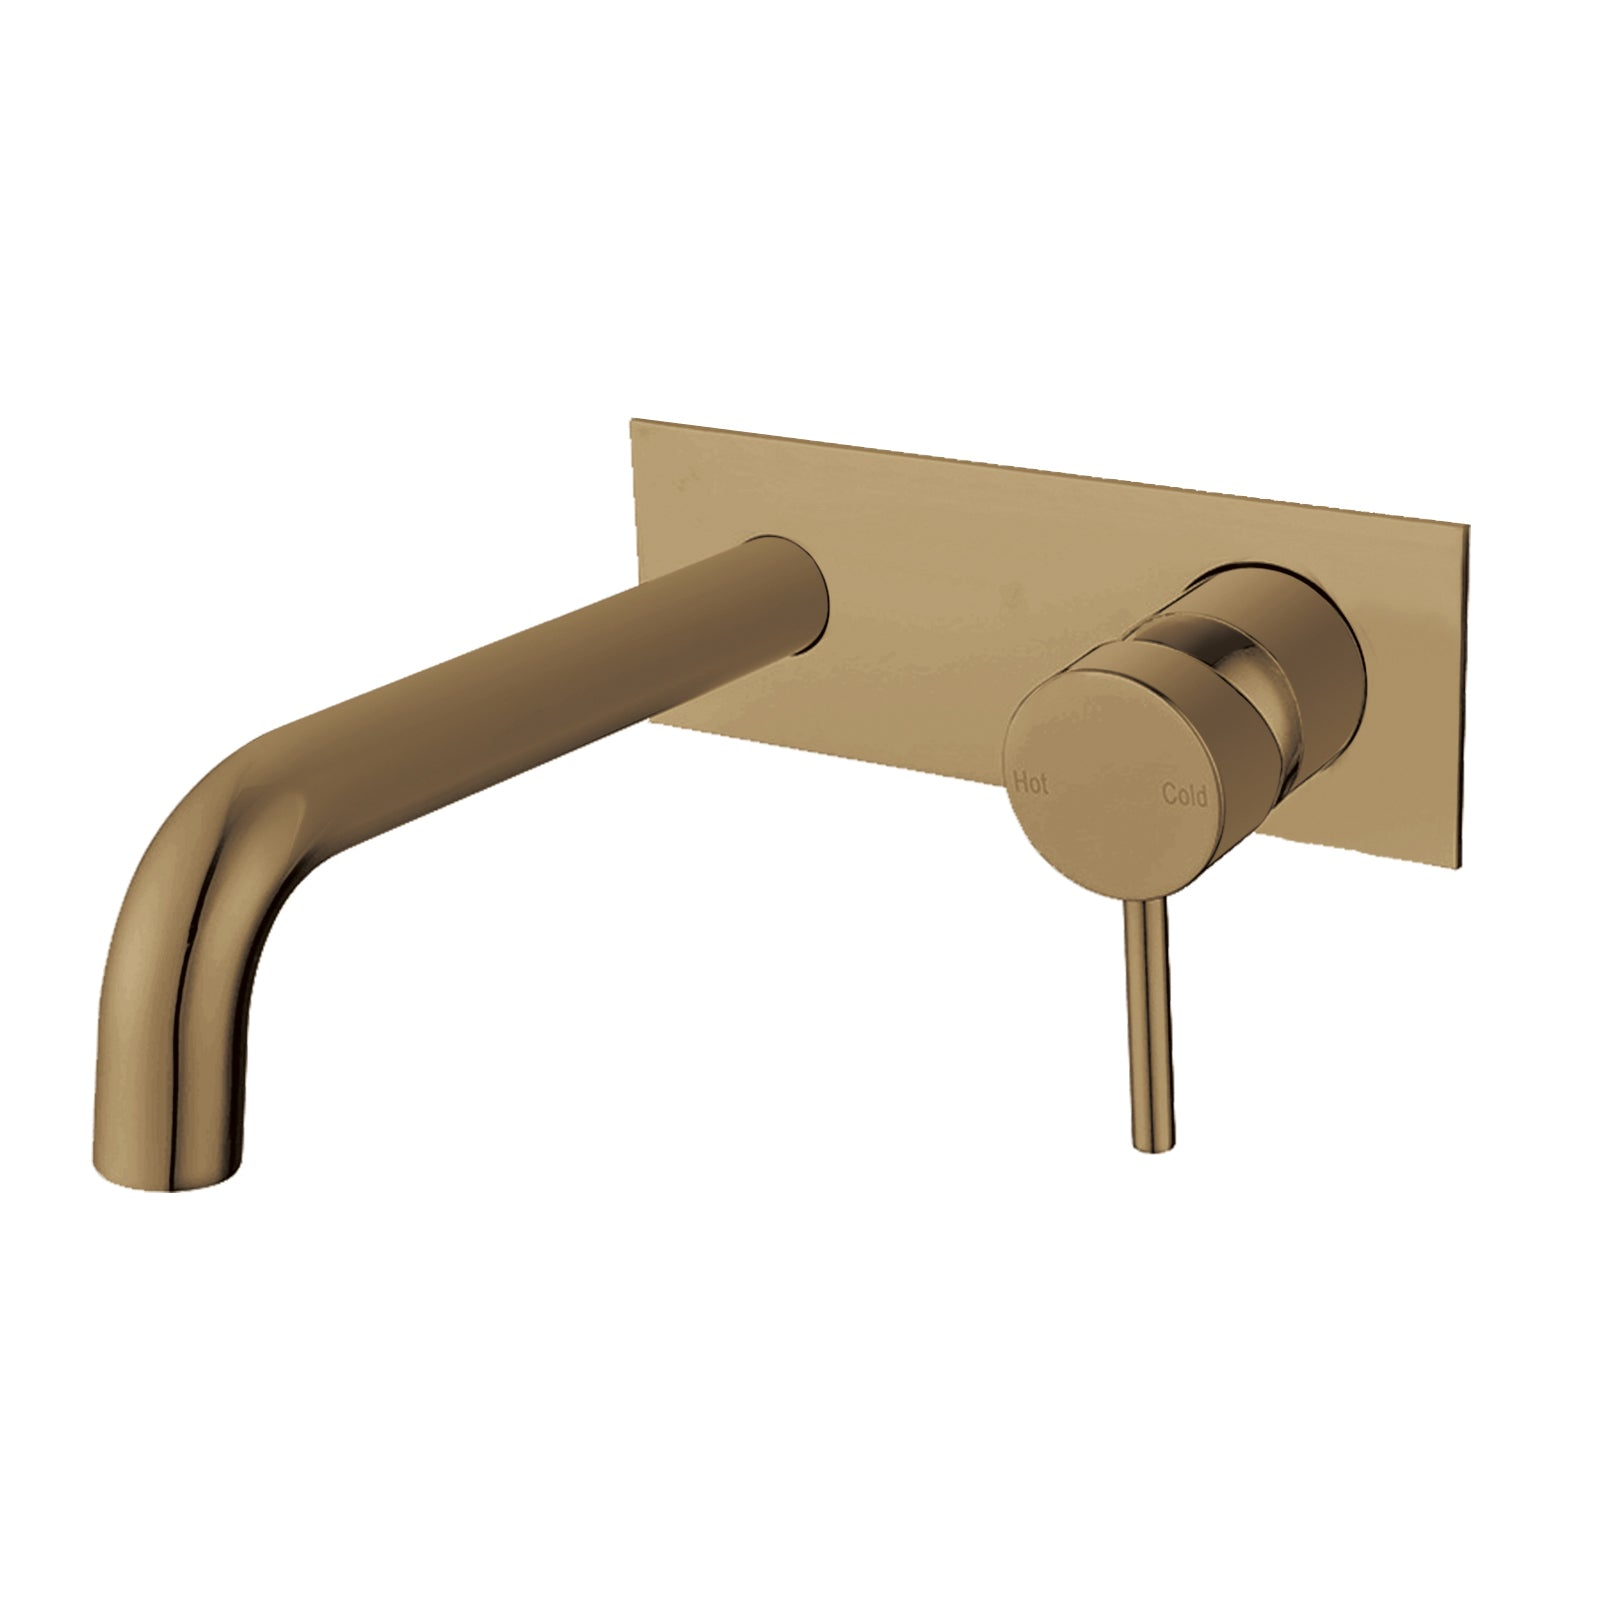 Pentro Brushed Yellow Gold Wall Mixer With Round Spout